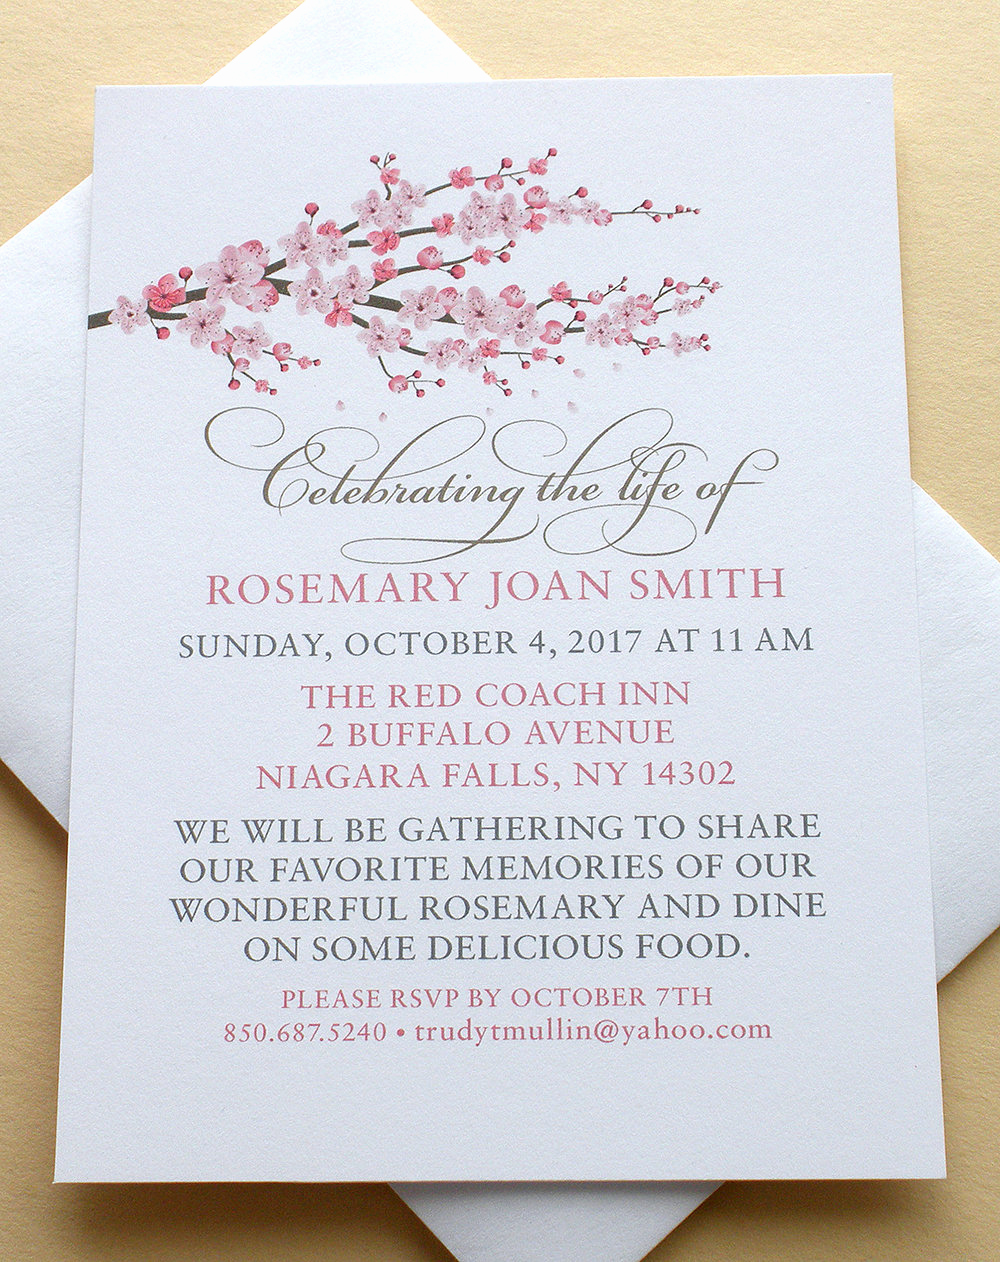 Celebration Of Life Invitation Wording Best Of Celebration Of Life Invitations with A Branch Of Pink Blossoms